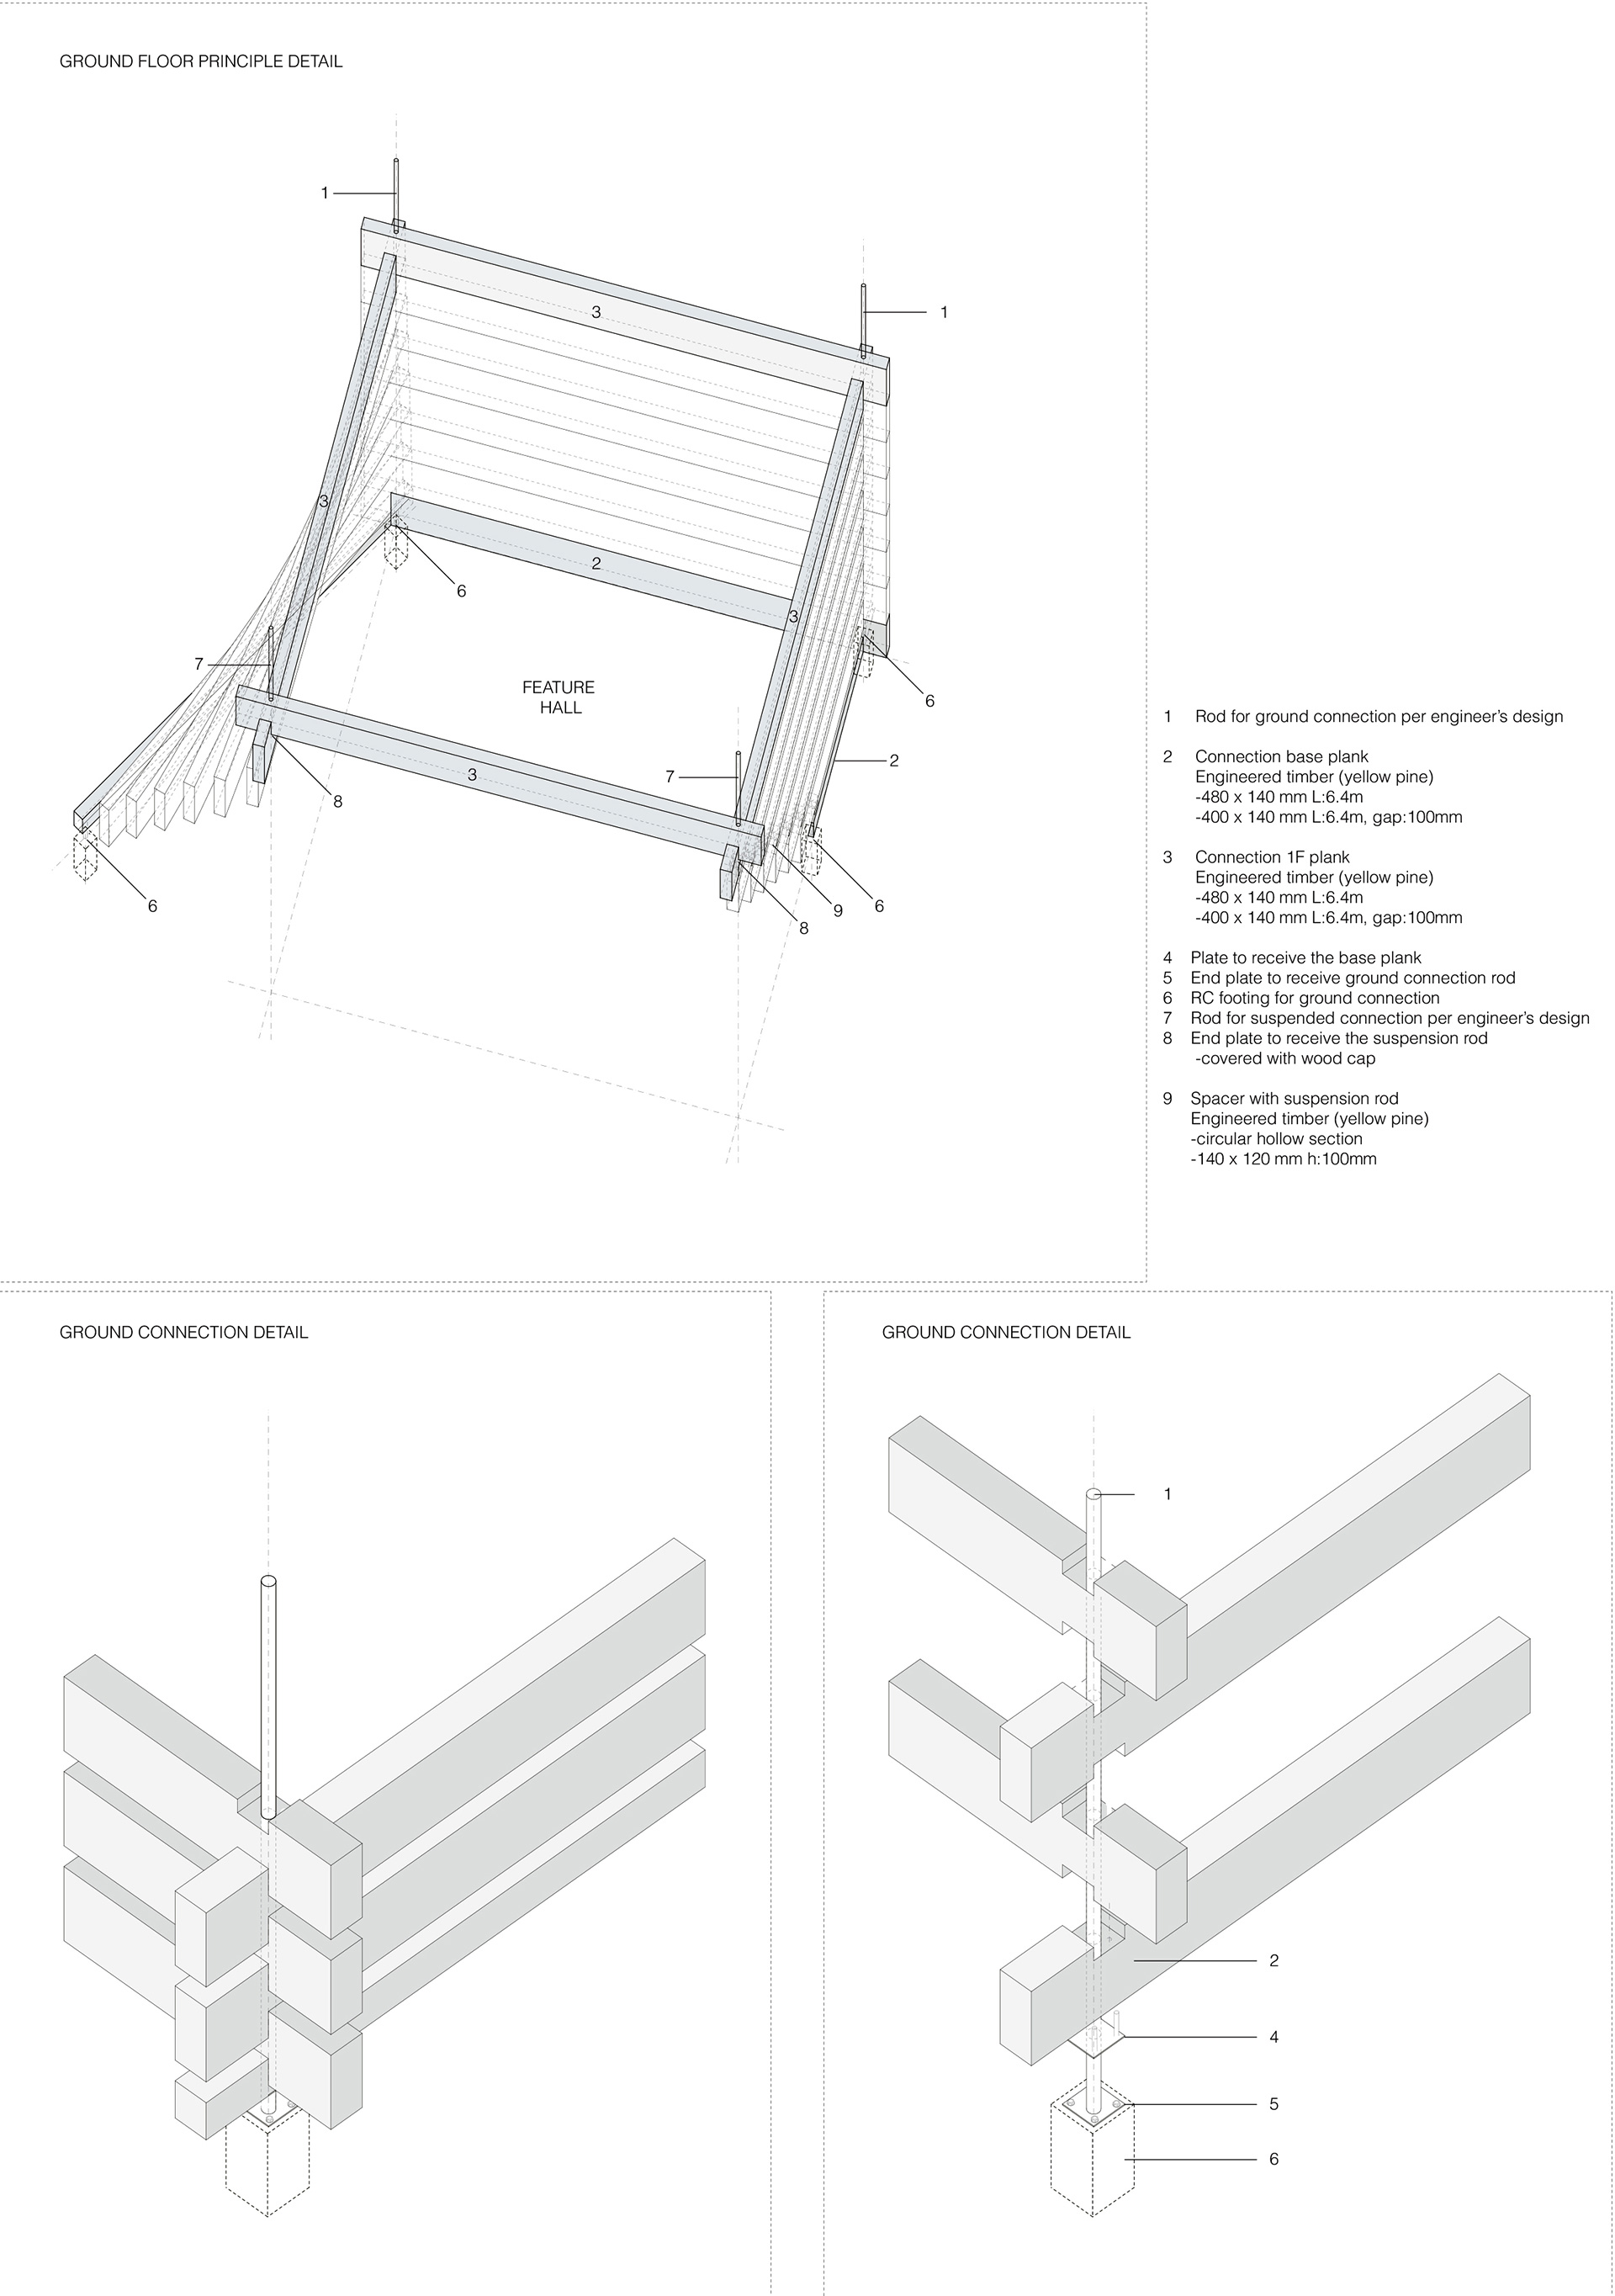 Atrium Detail - axonometric | Odunpazari Modern Museum| Kengo Kuma and Associates | STIR